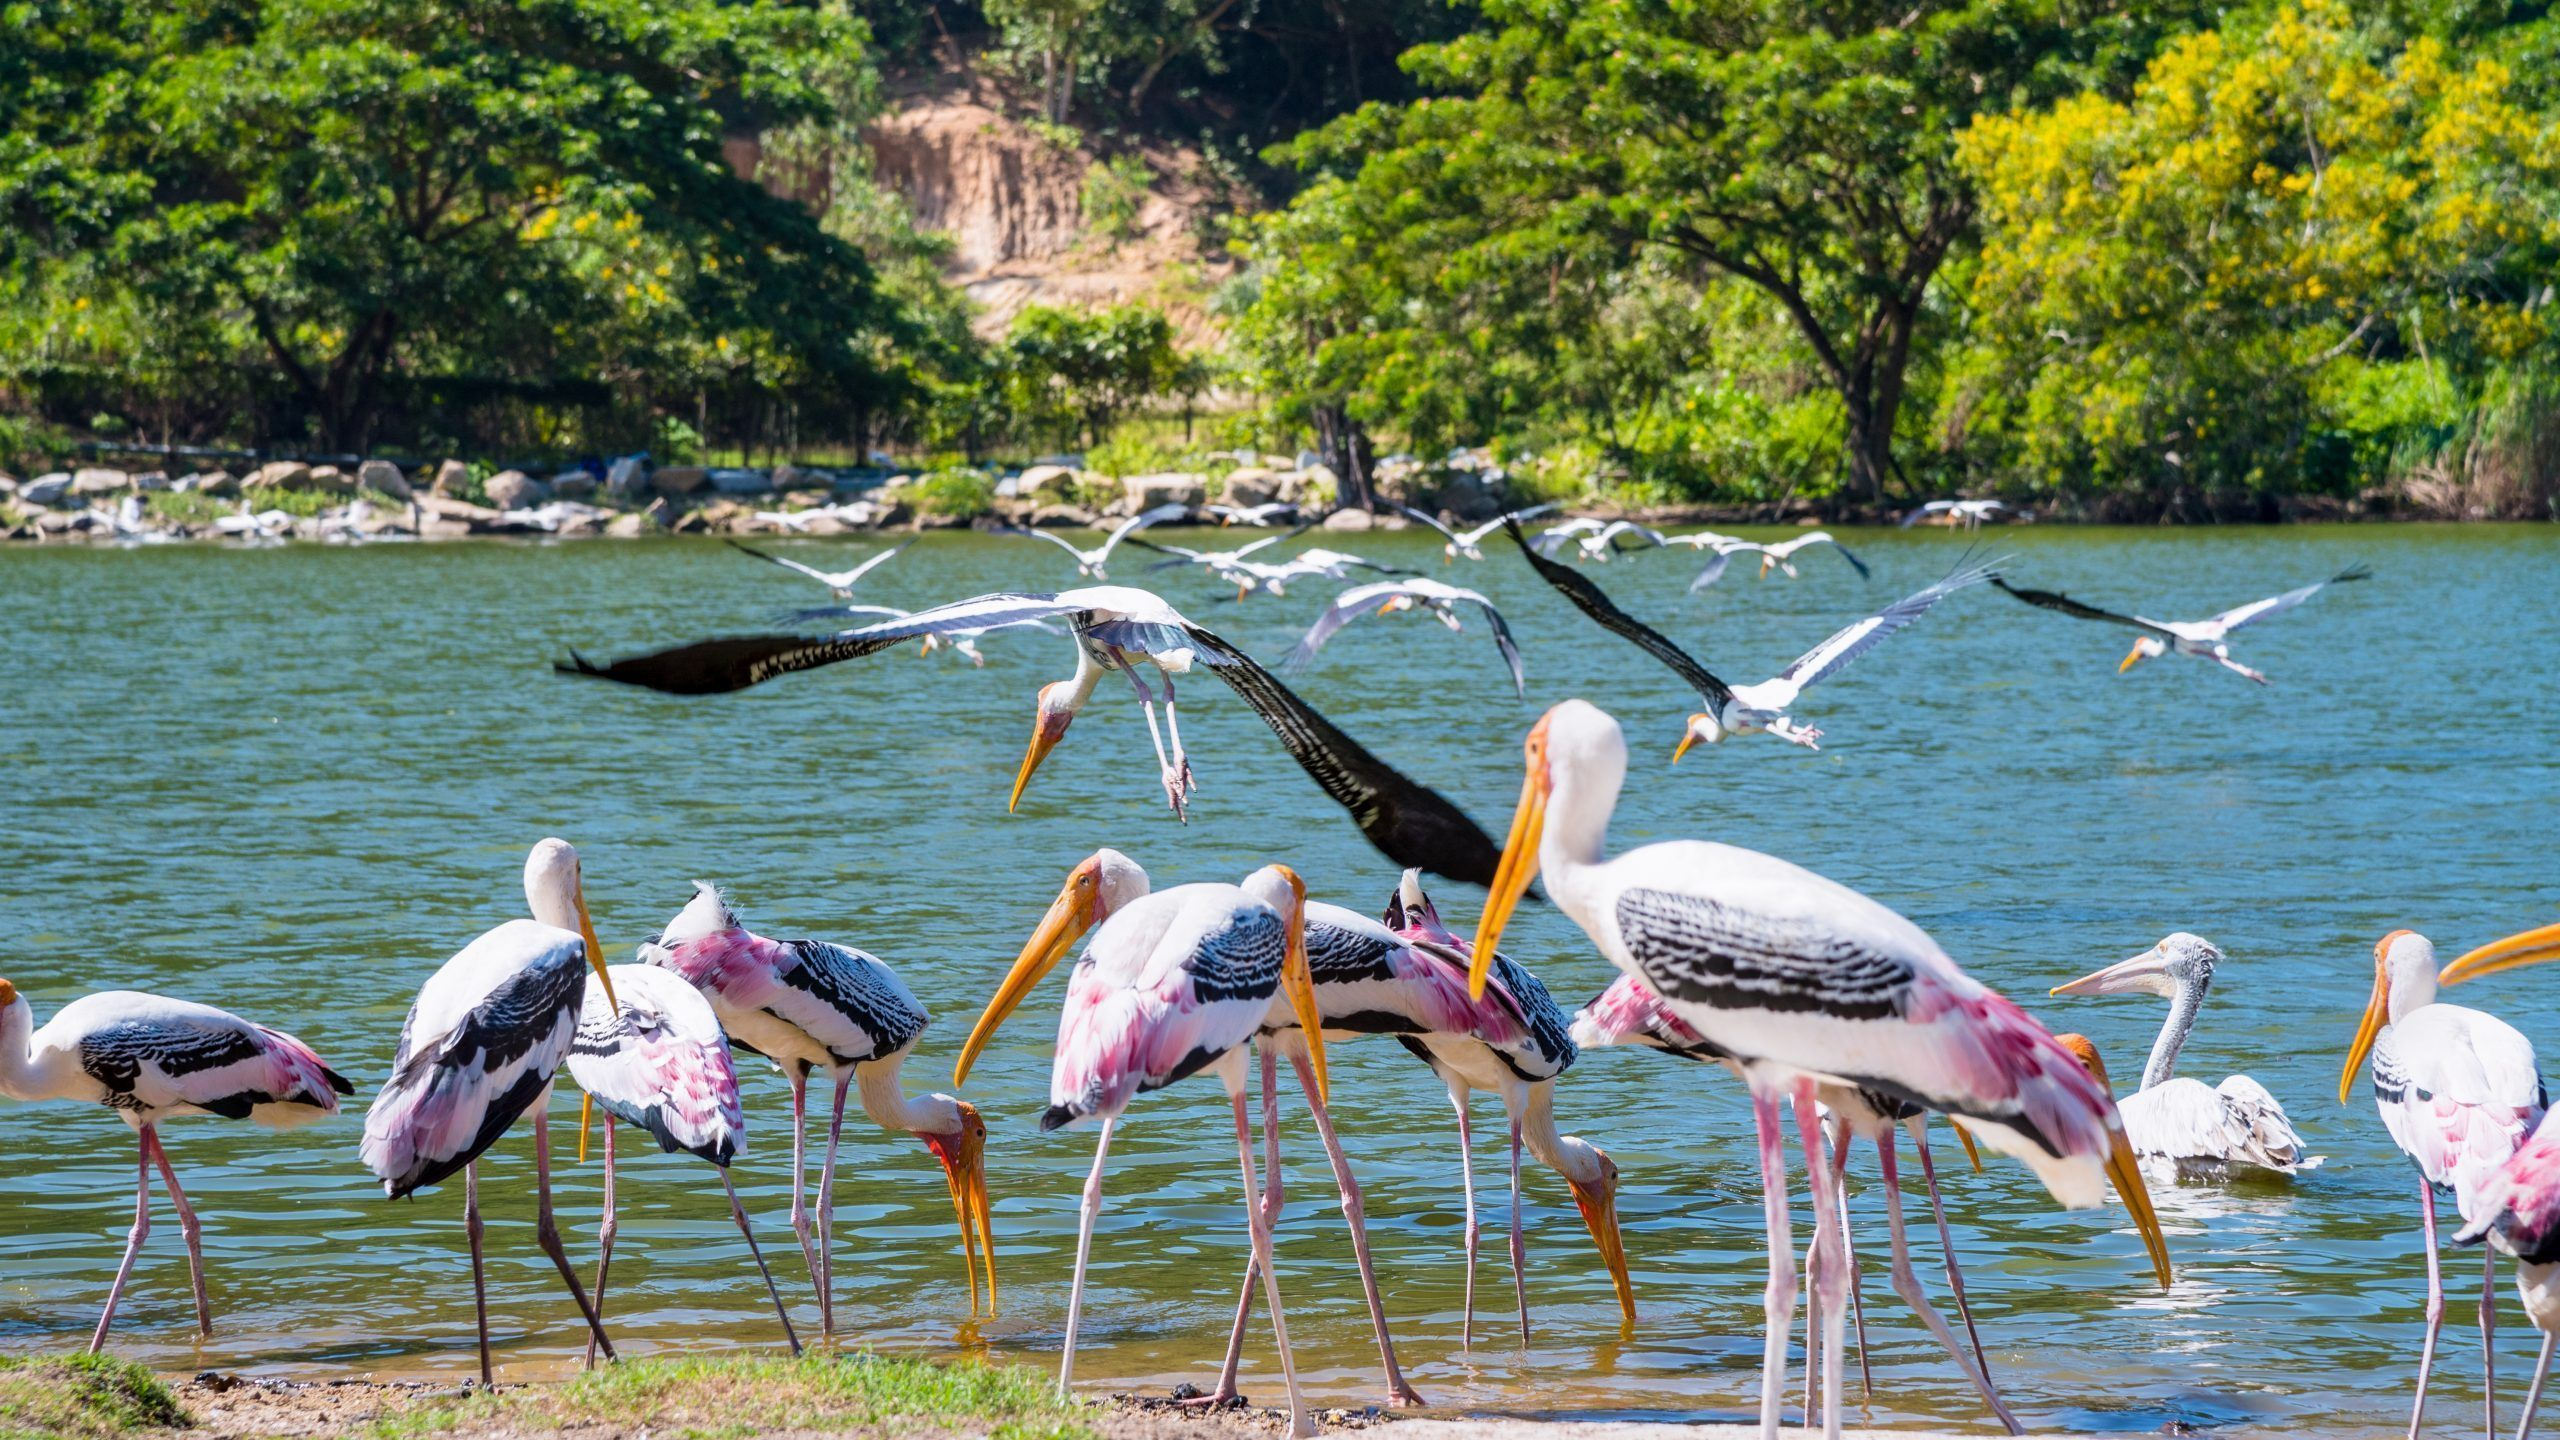 Group of Painted Stork or Mycteria Leucocephala, Flock of big bird foraging on the waterfront and flying at the lake, Beautiful wildlife in nature tranquil tropical forest of Thailand, 16:9 widescreen